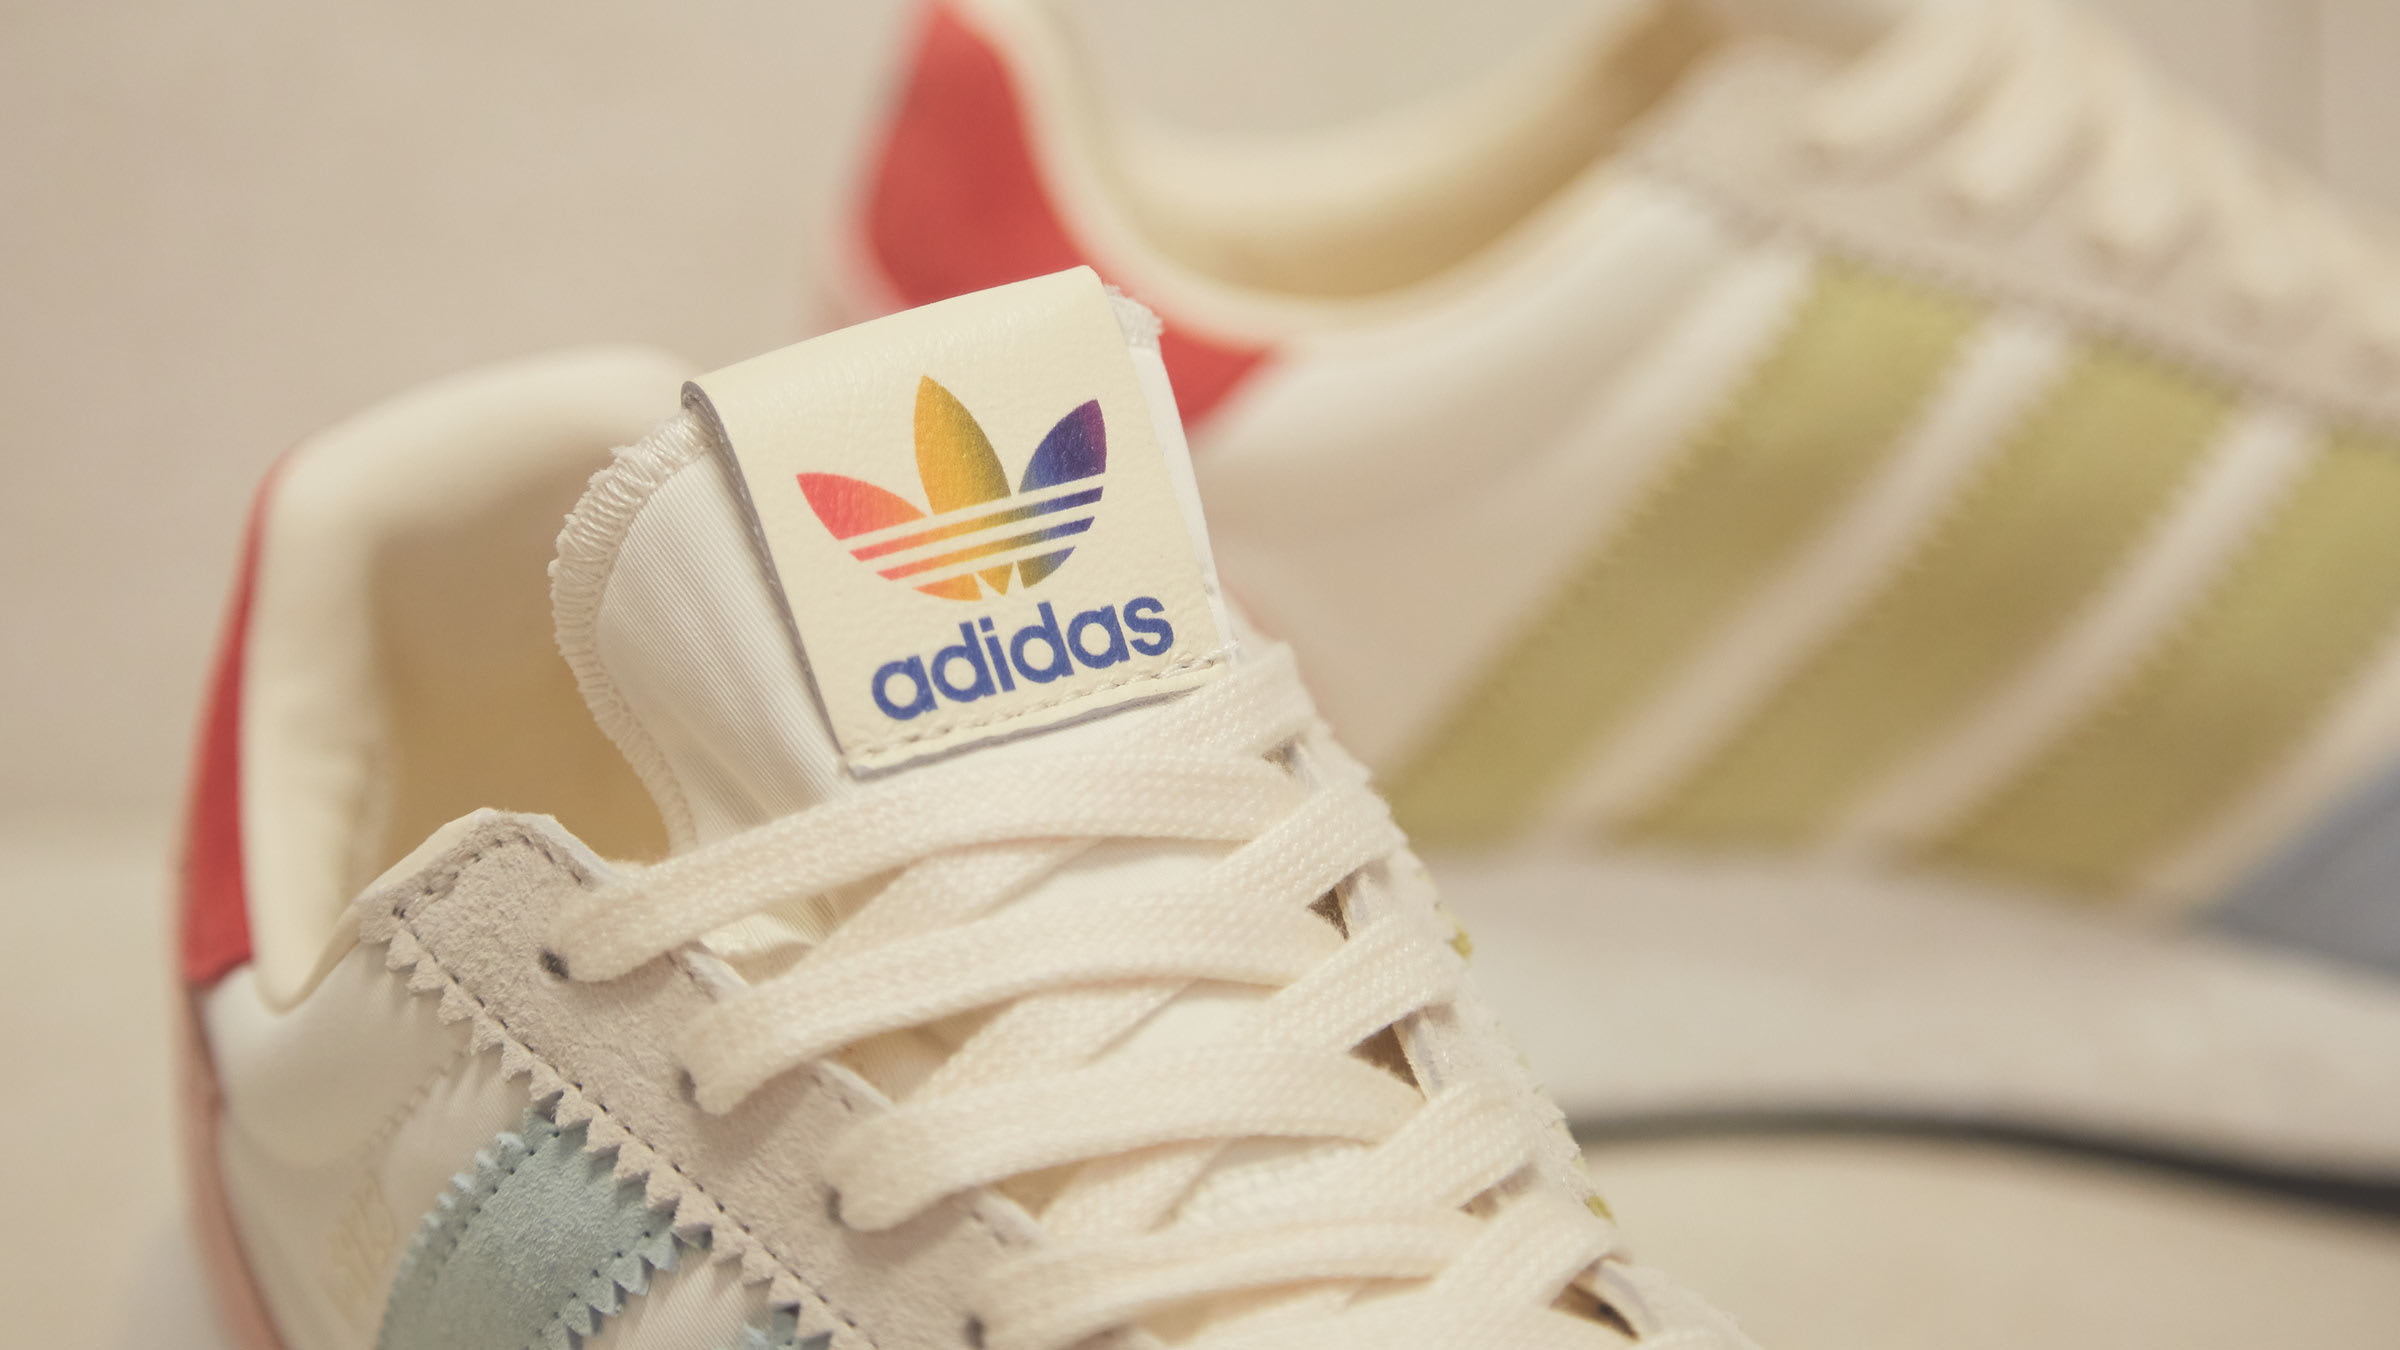 adidas I 5923 Boost Pride Cream White in 2019 | Pride shoes